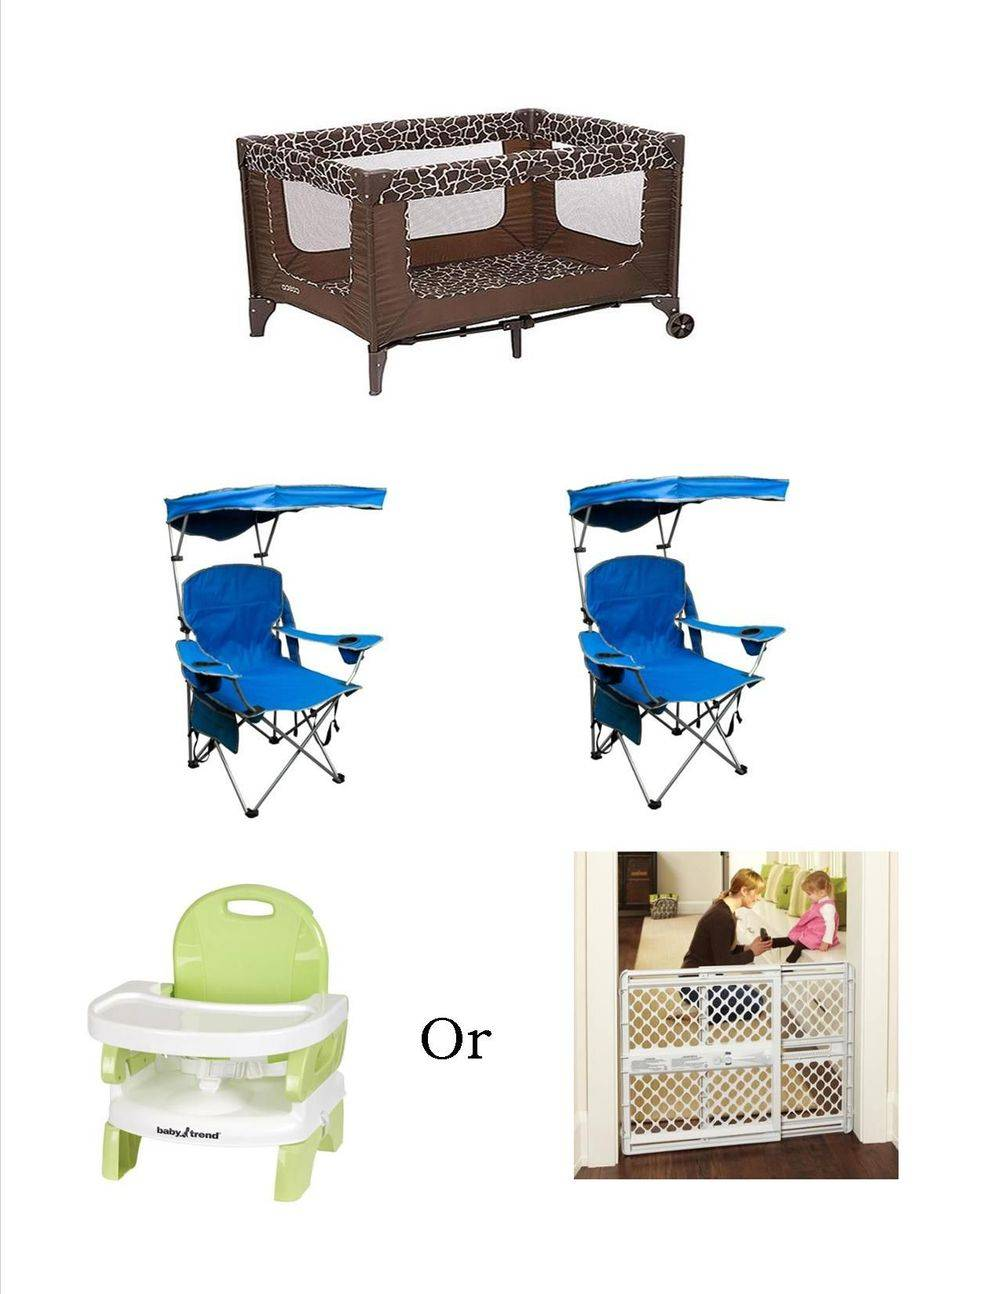 Baby pack and play, beach chairs package